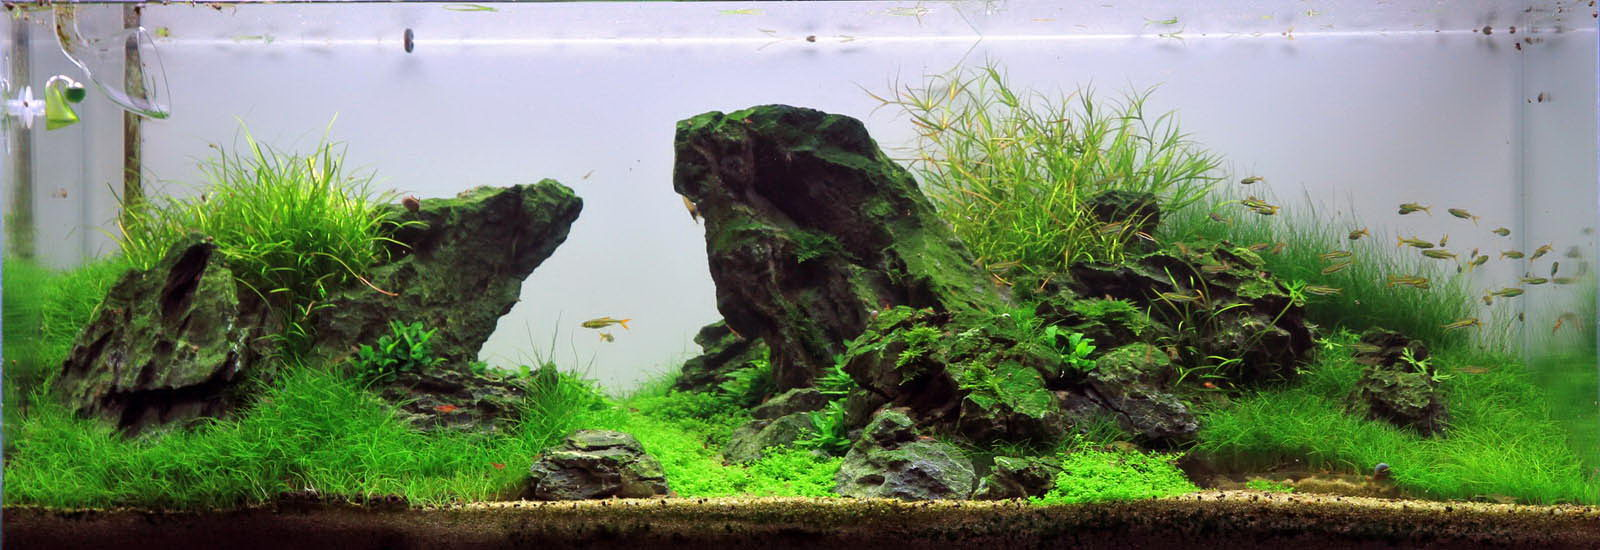 Freir 228 Ume Im Aquascaping Aqua Rebell